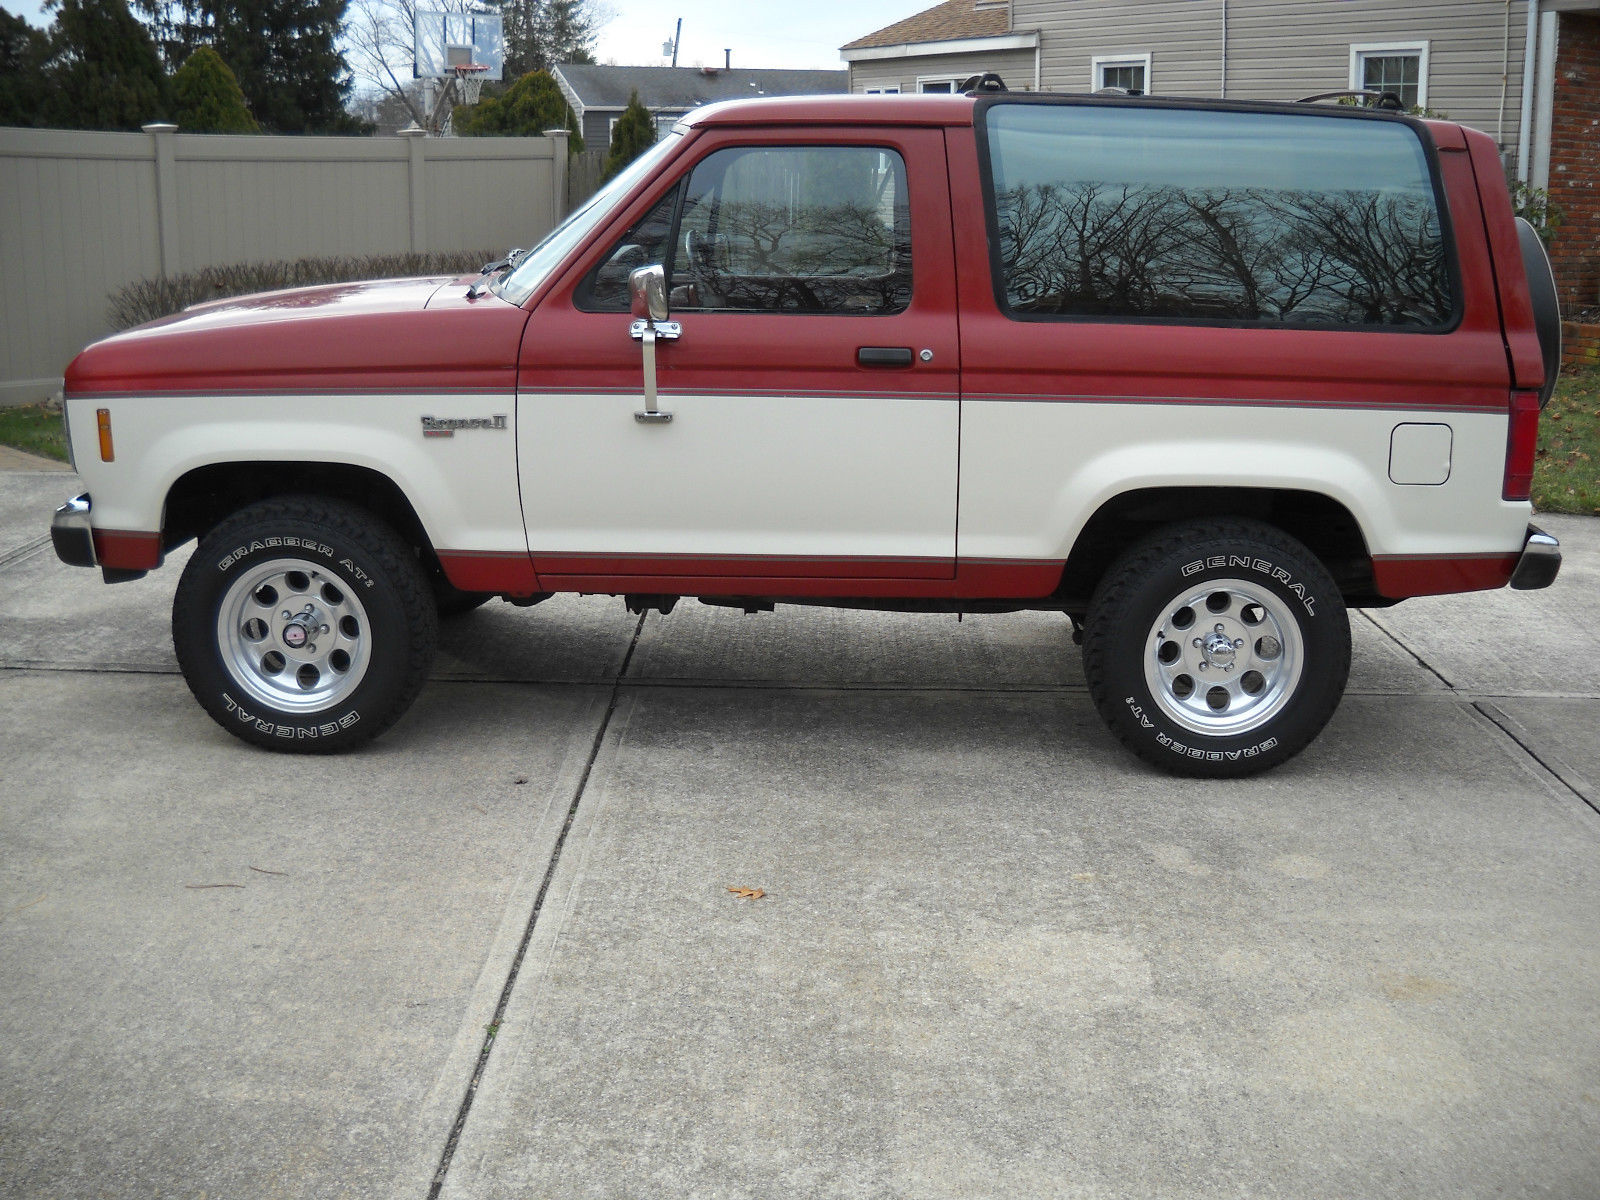 1987 ford bronco ii xlt mint condition for sale in williamstown new jersey united states. Black Bedroom Furniture Sets. Home Design Ideas